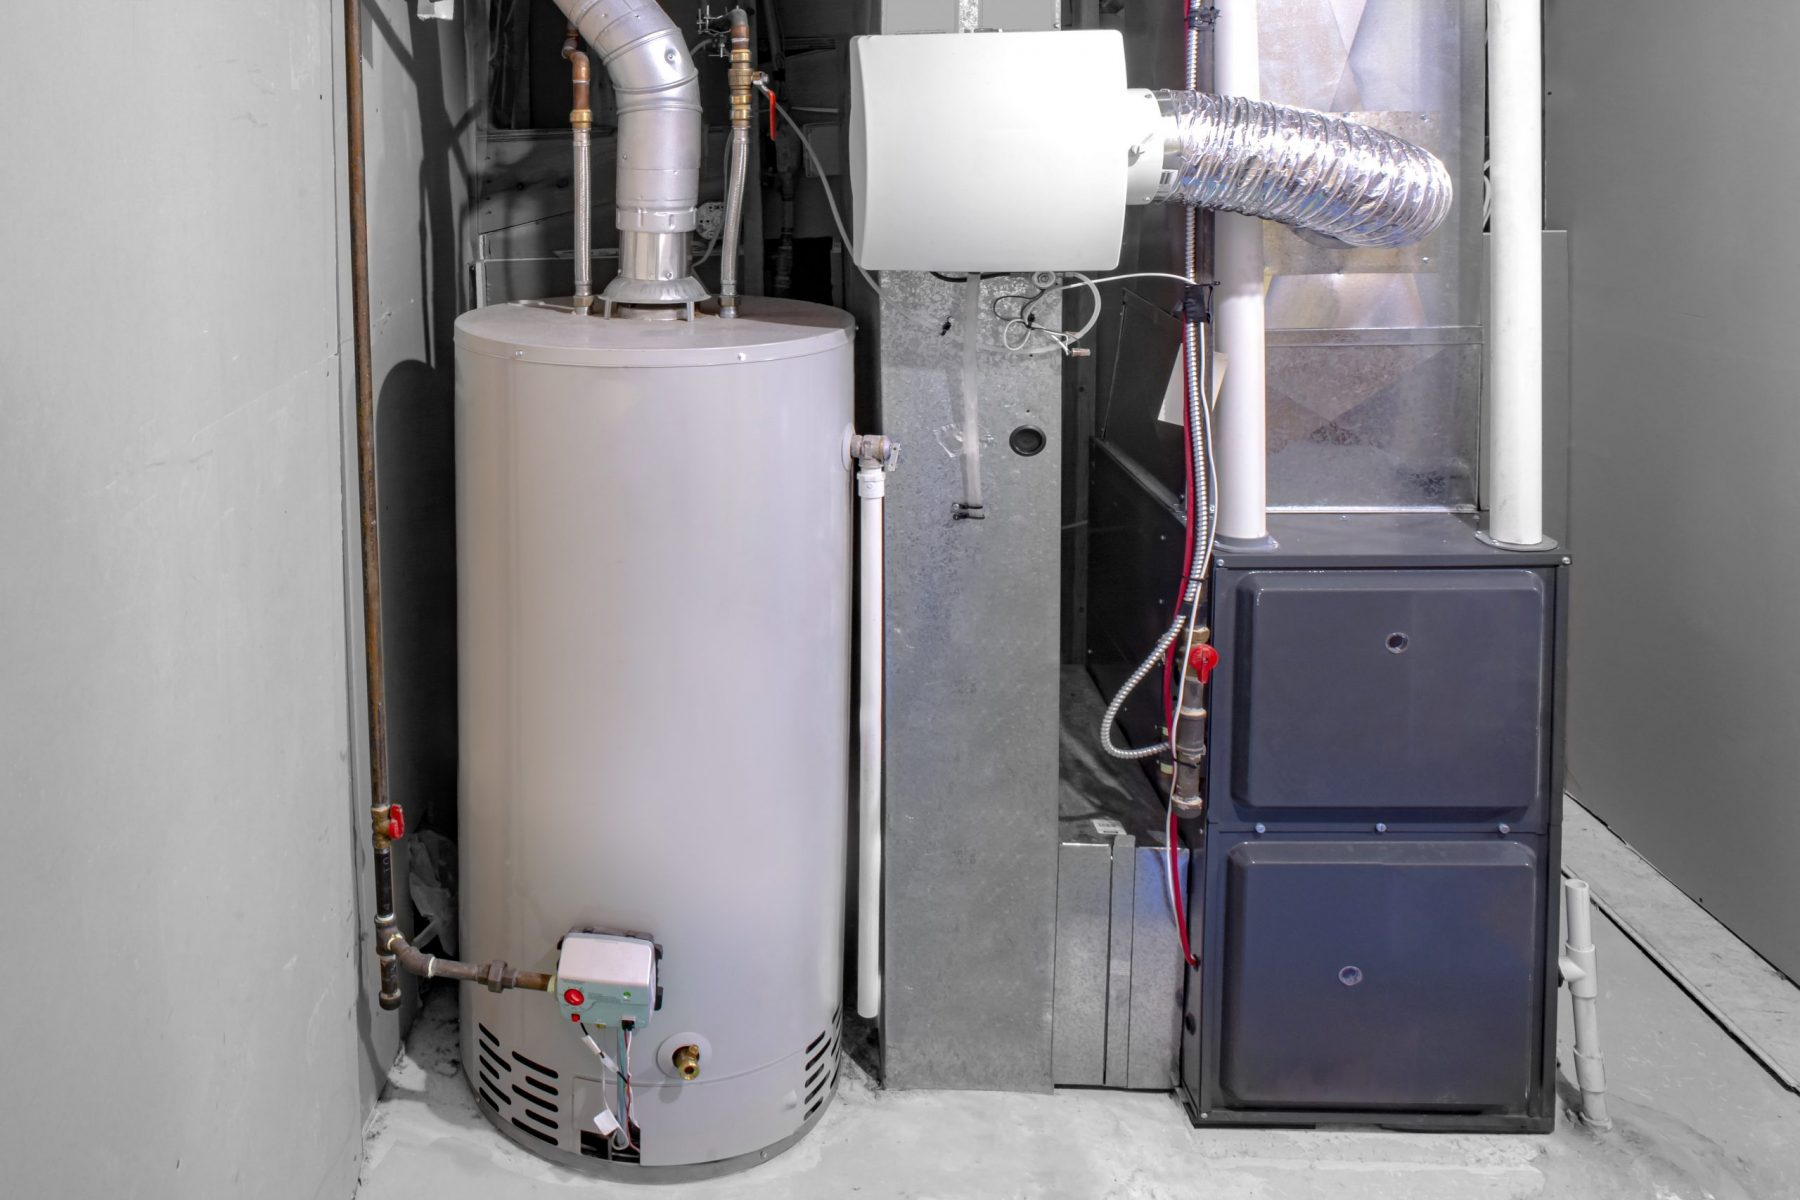 Home boiler and furnace set up in residential basement